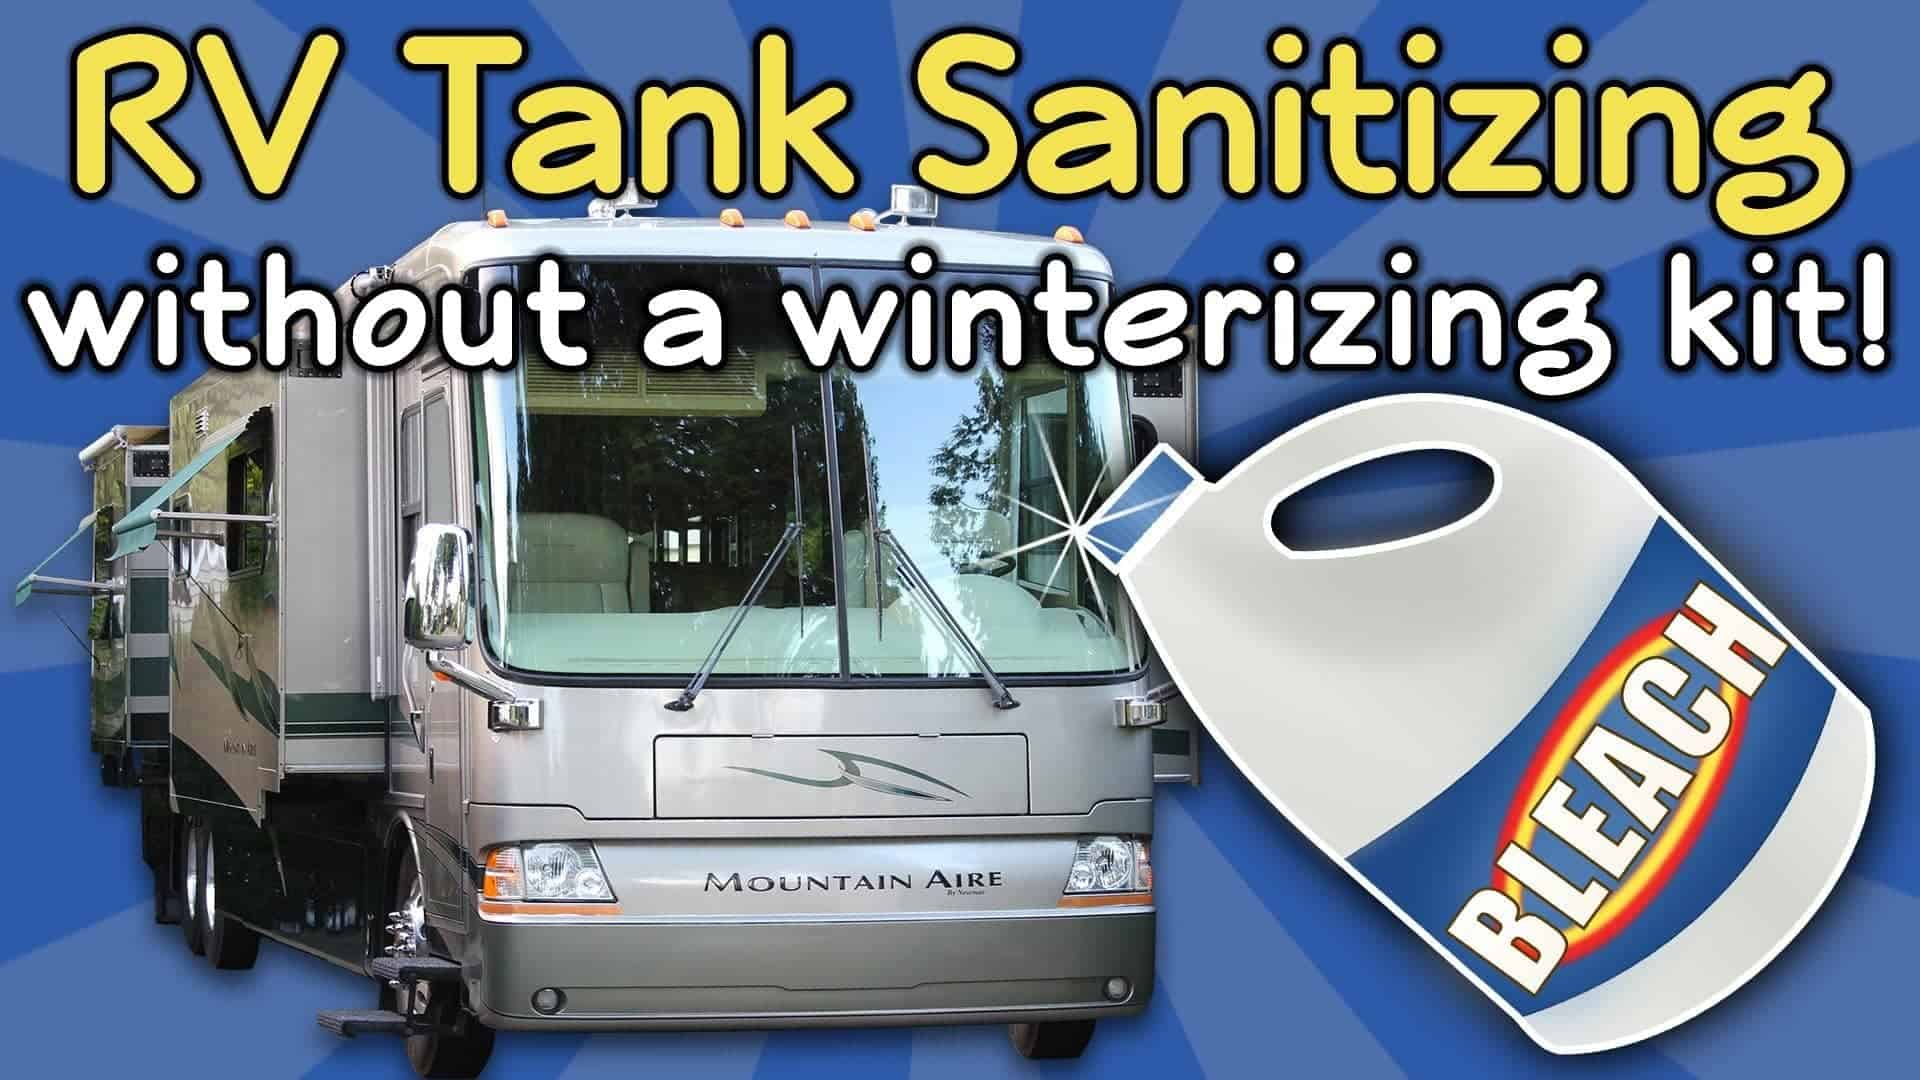 Cool Trick! Sanitize Your RV's Fresh Water System Without a Winterizing Kit.